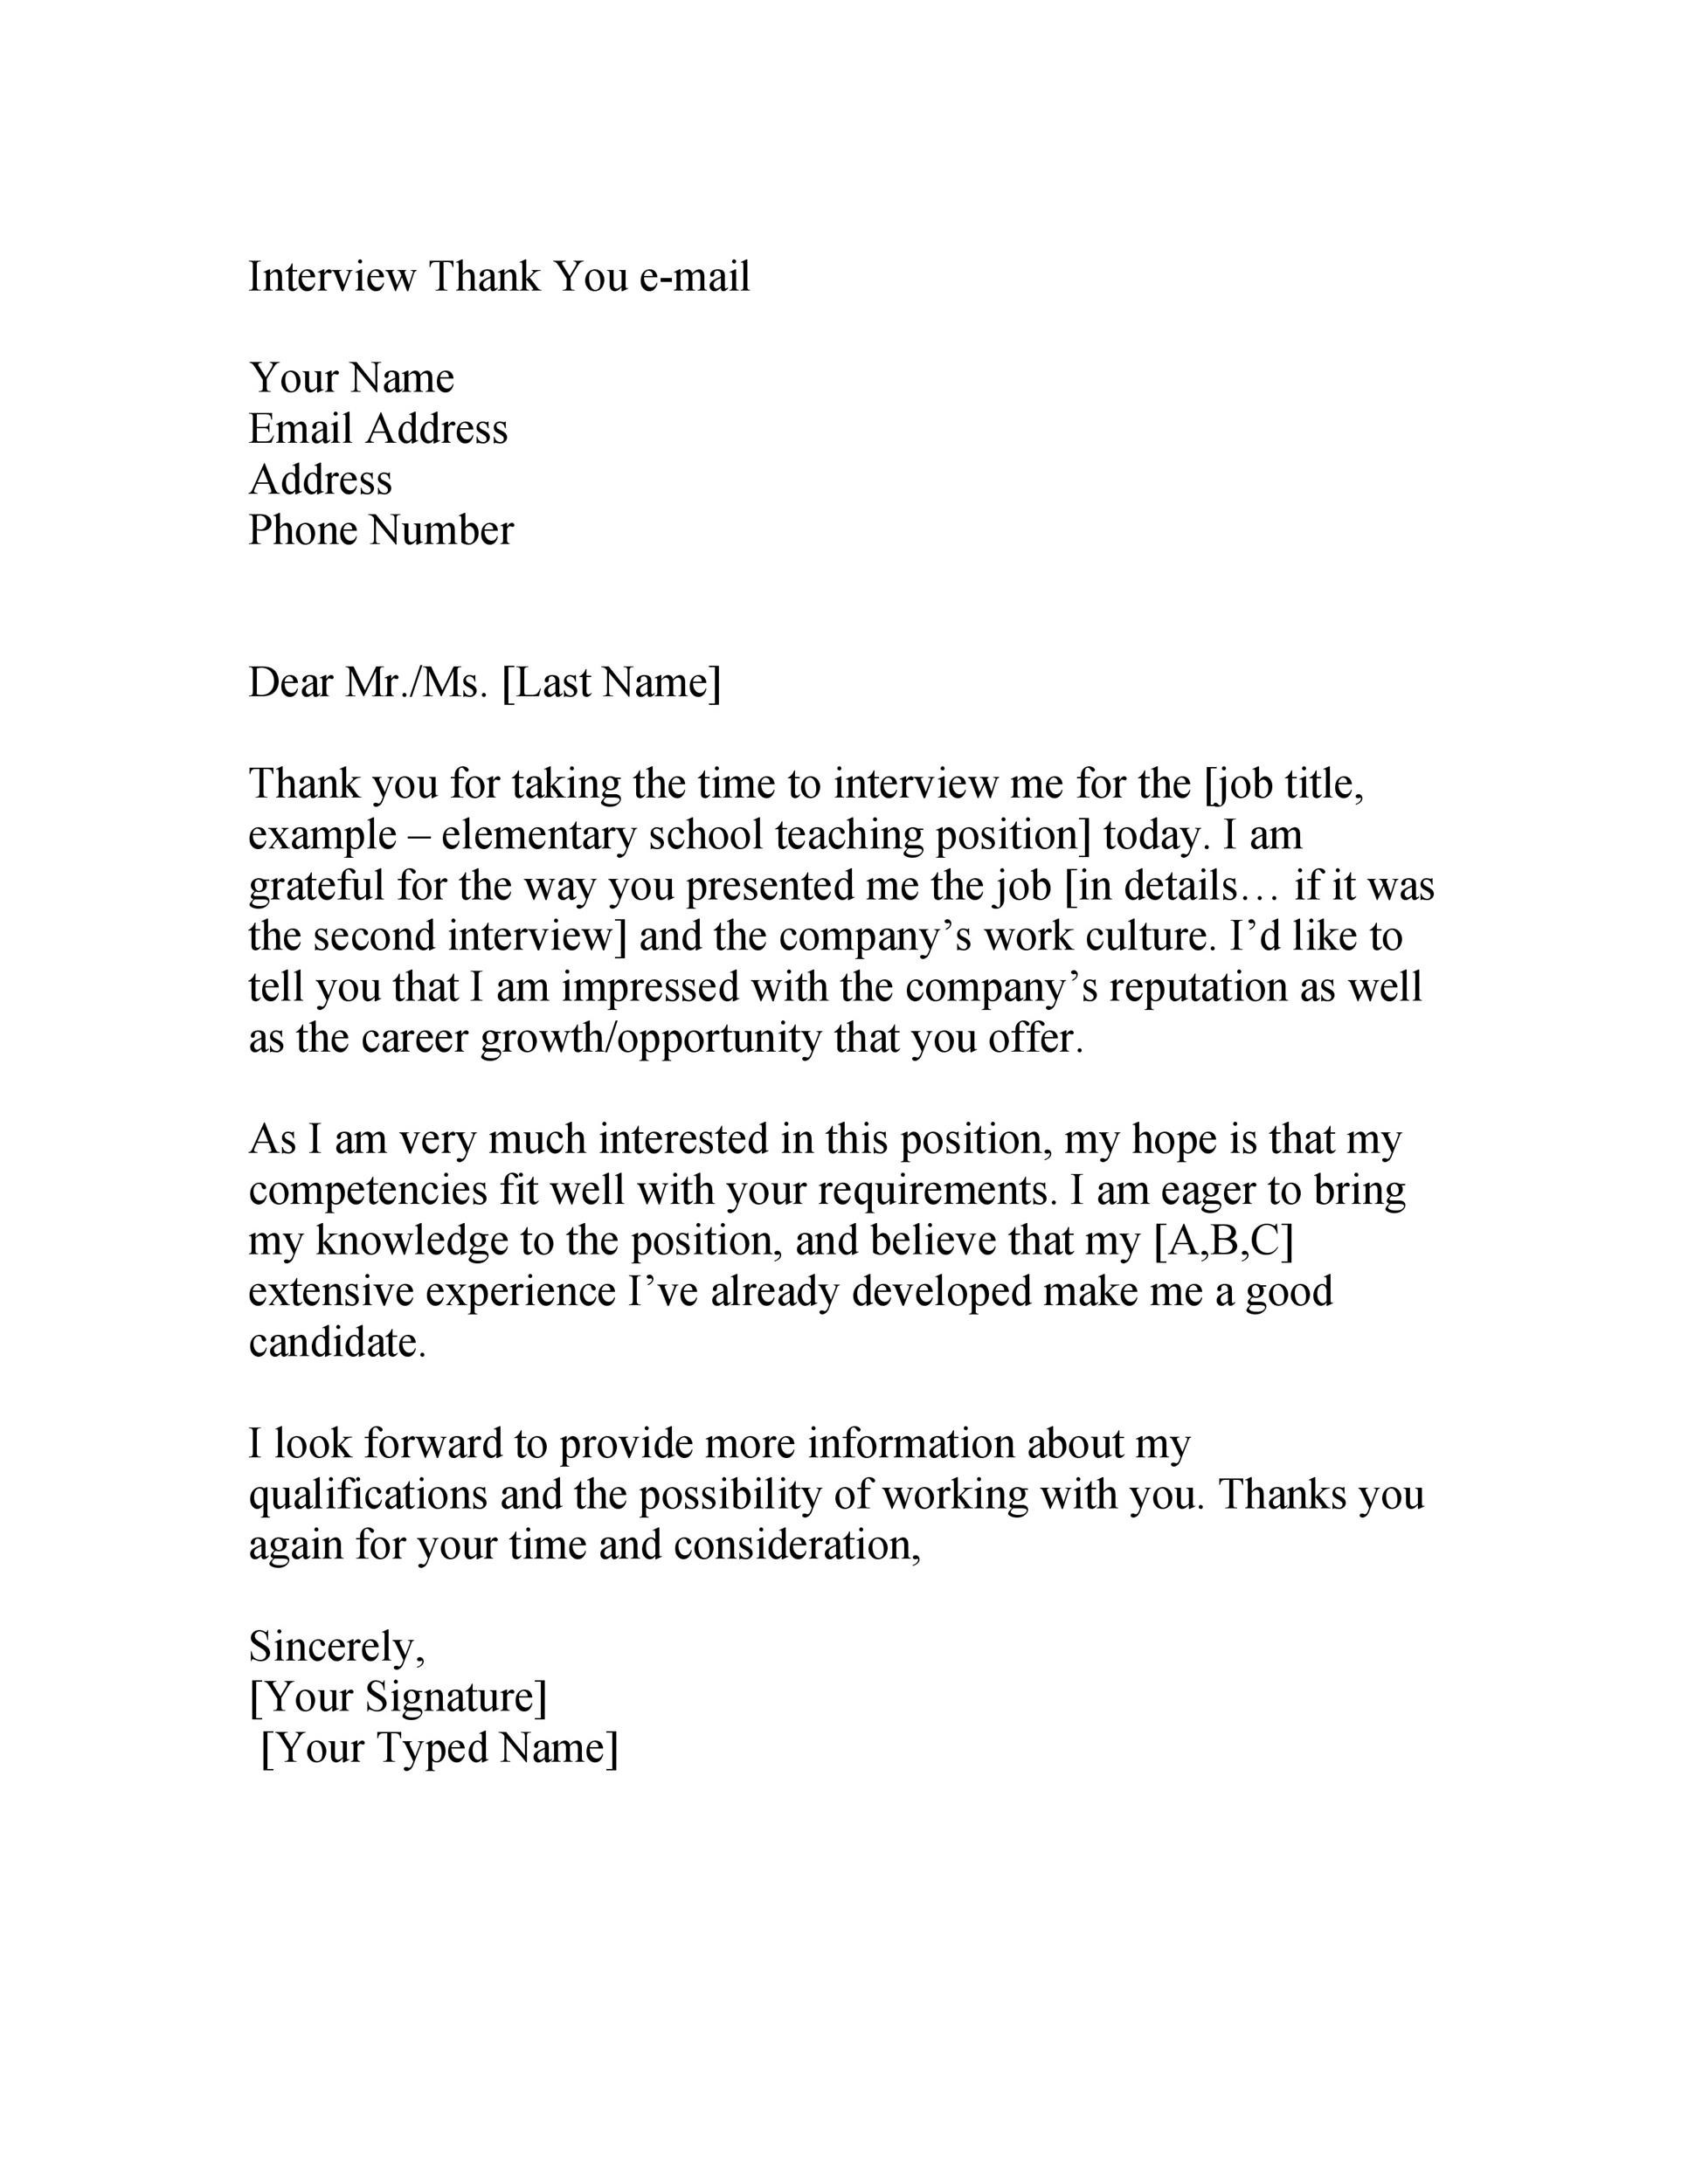 Follow Up Interview Thank You Letter from templatelab.com